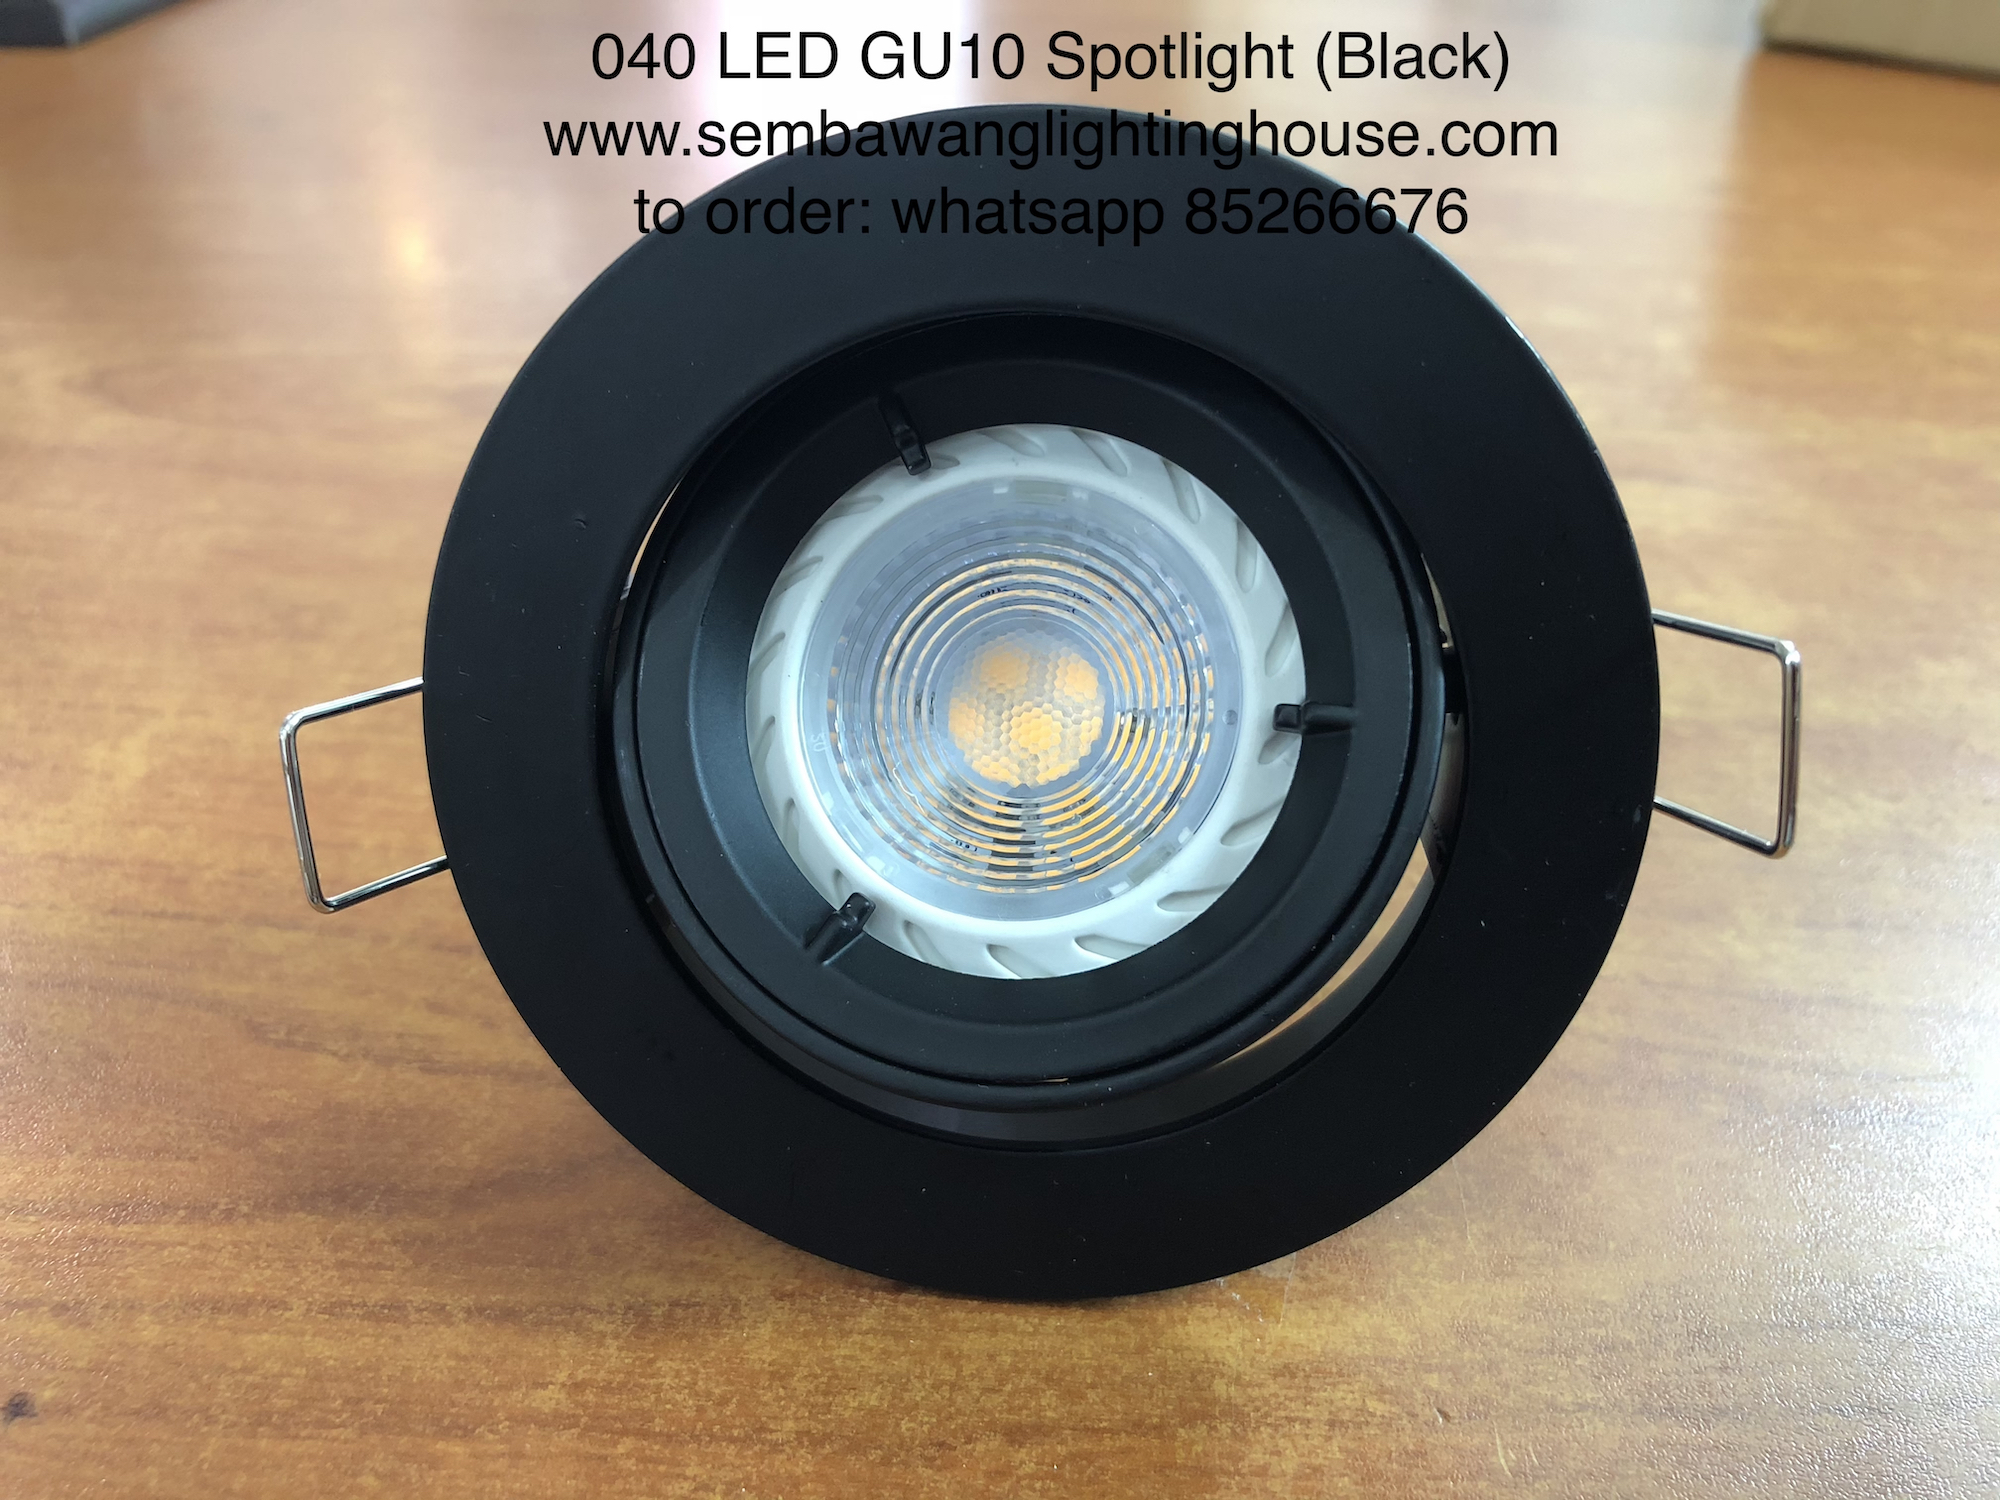 040-bk-led-spotlight-gu10-b.jpg